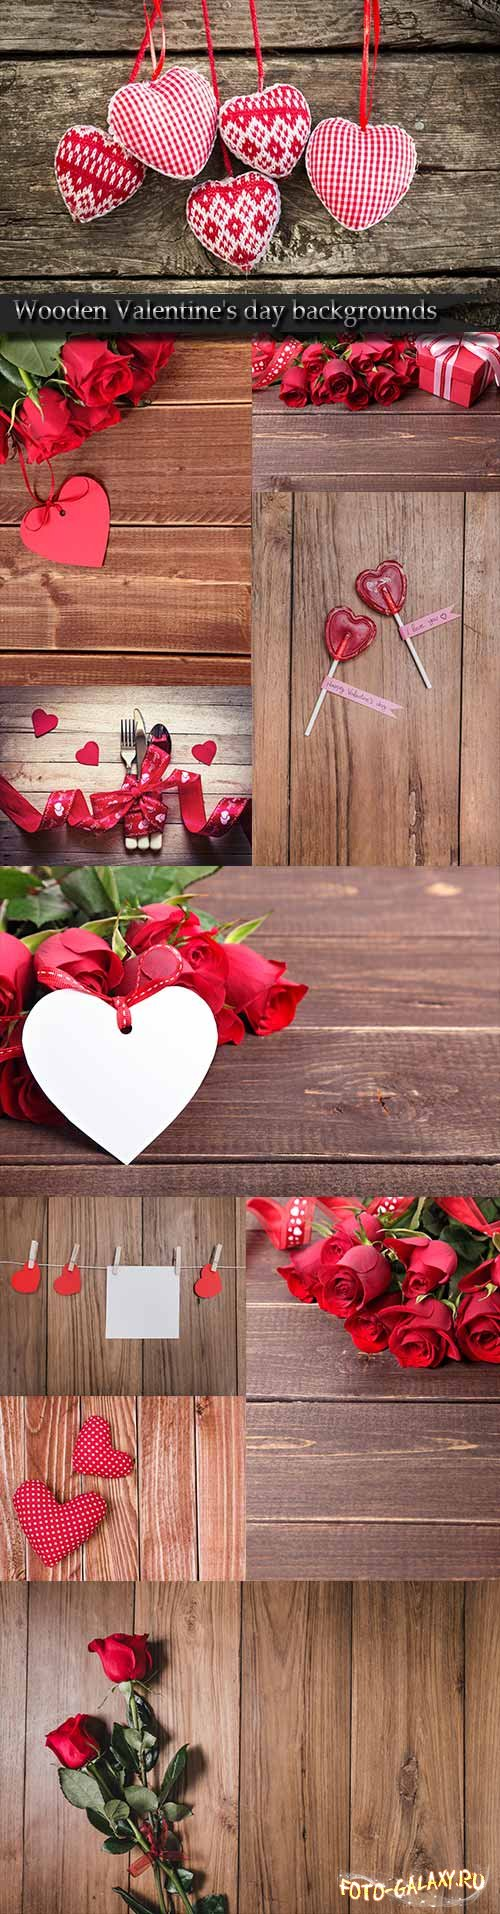 Wooden Valentine's day backgrounds